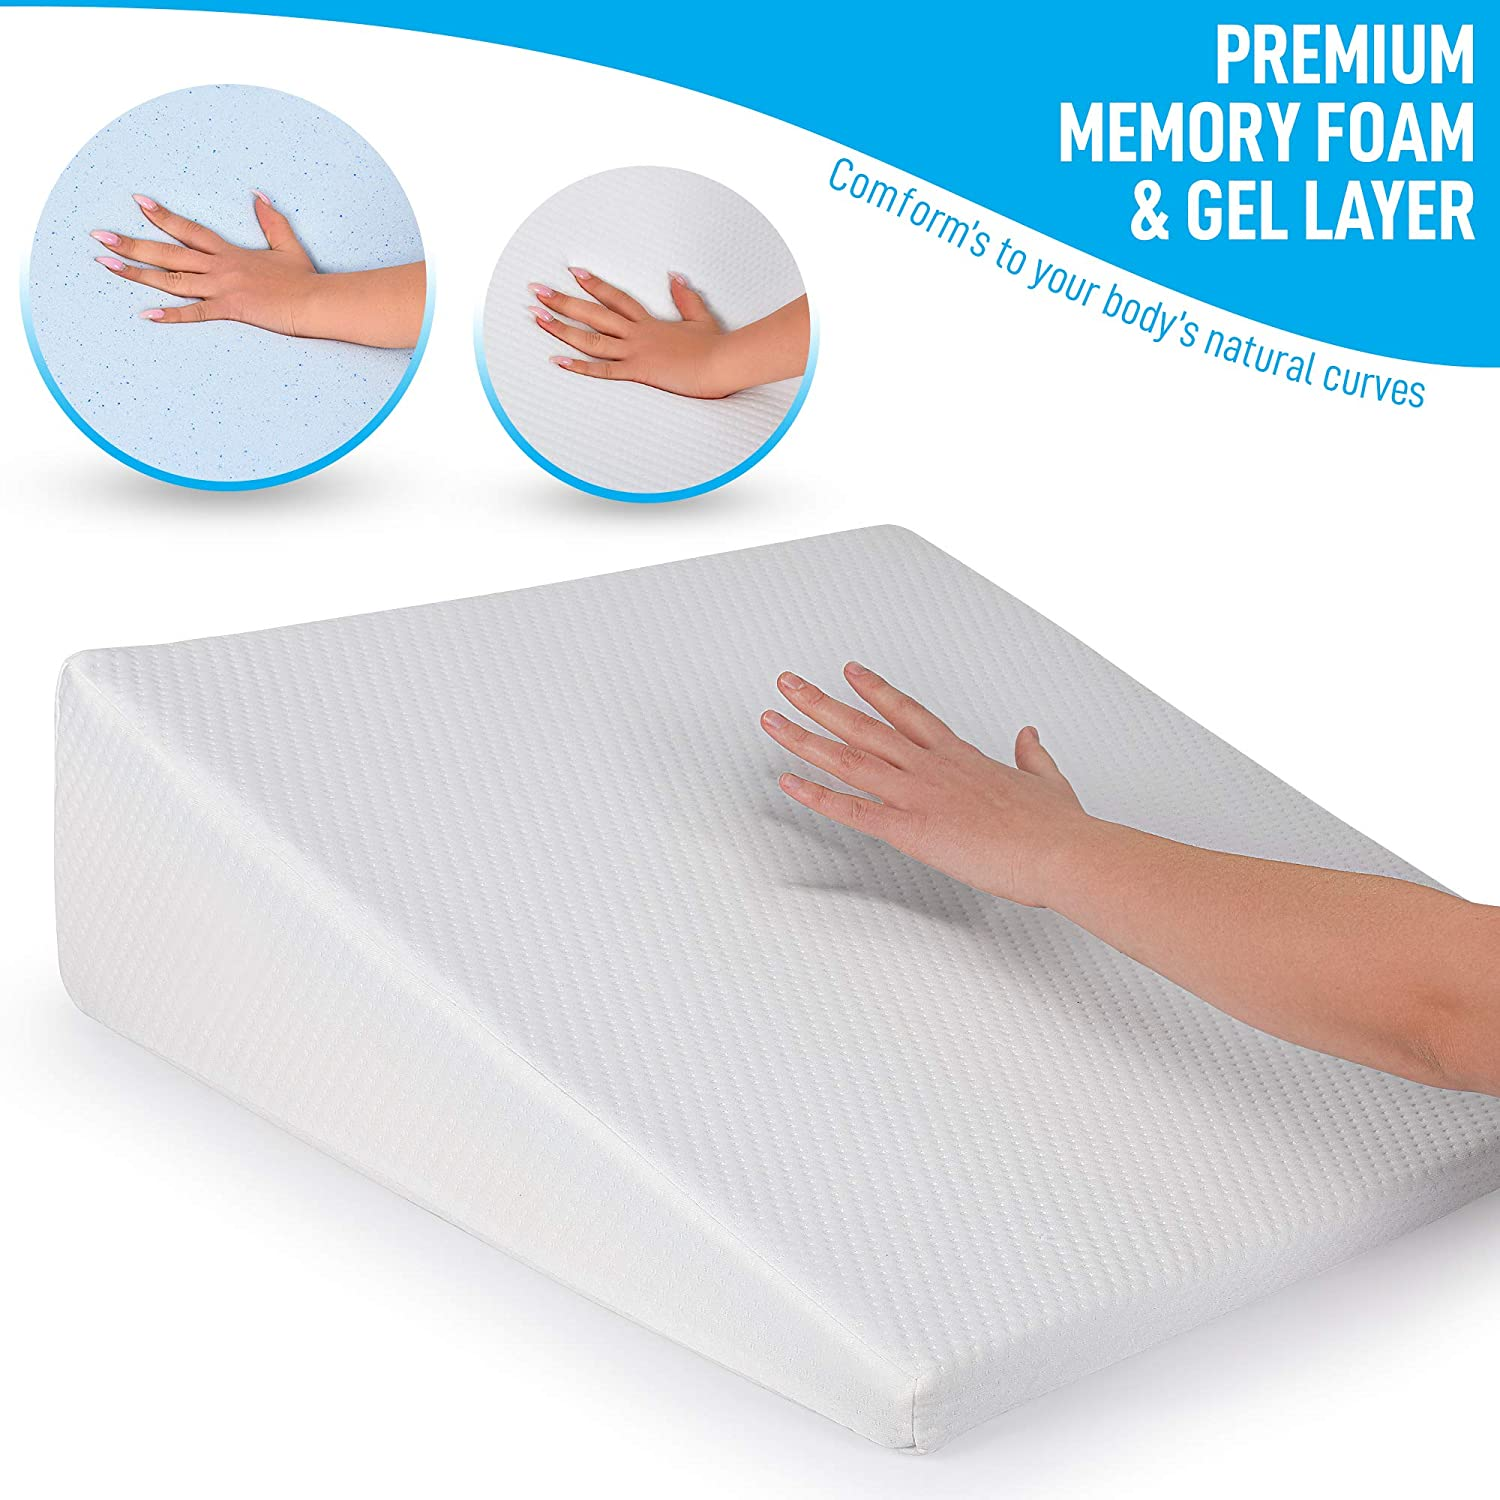 Ultra Soft Soft Removable Cover 8 inch Wedge Healthex Bed Wedge Pillow Cooling Gel Memory Foam Top